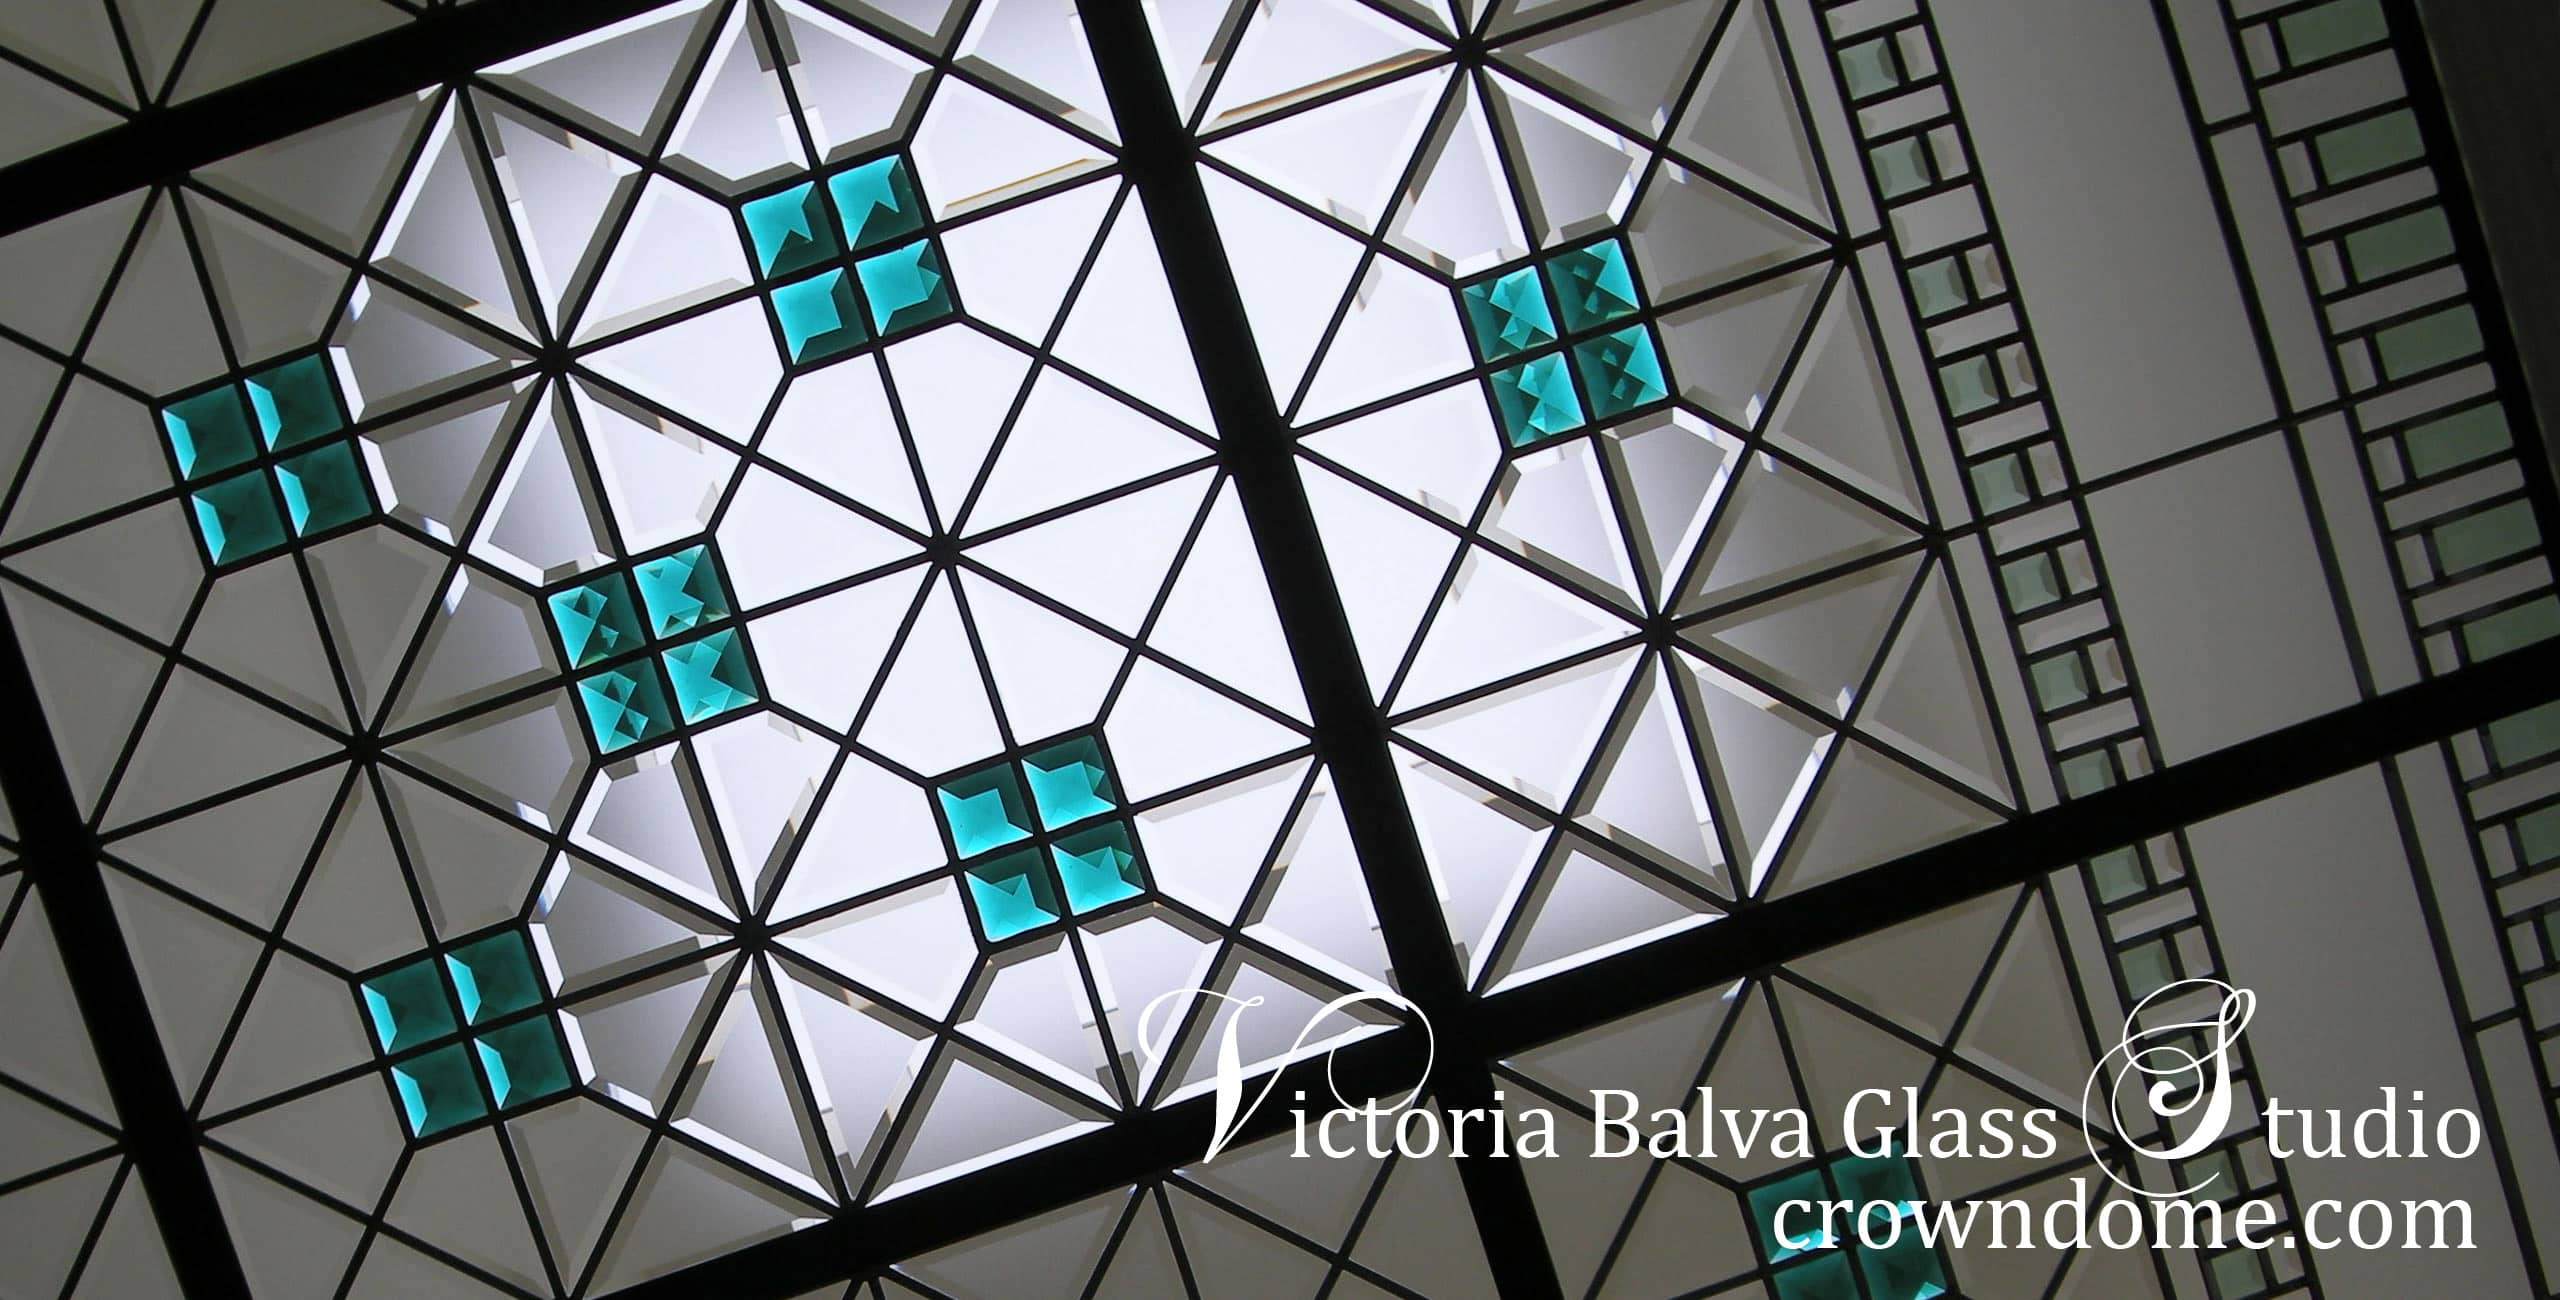 Beautiful contemporary stained leaded beveled glass ceiling design with custom beveled glass and large accent emerald jewels by stained glass artist Victoria Balva. Minimalist stained beveled glass ceiling with intricate line work, emerald accent jewels and colored beveled glass for a bathroom of a custom built residence.